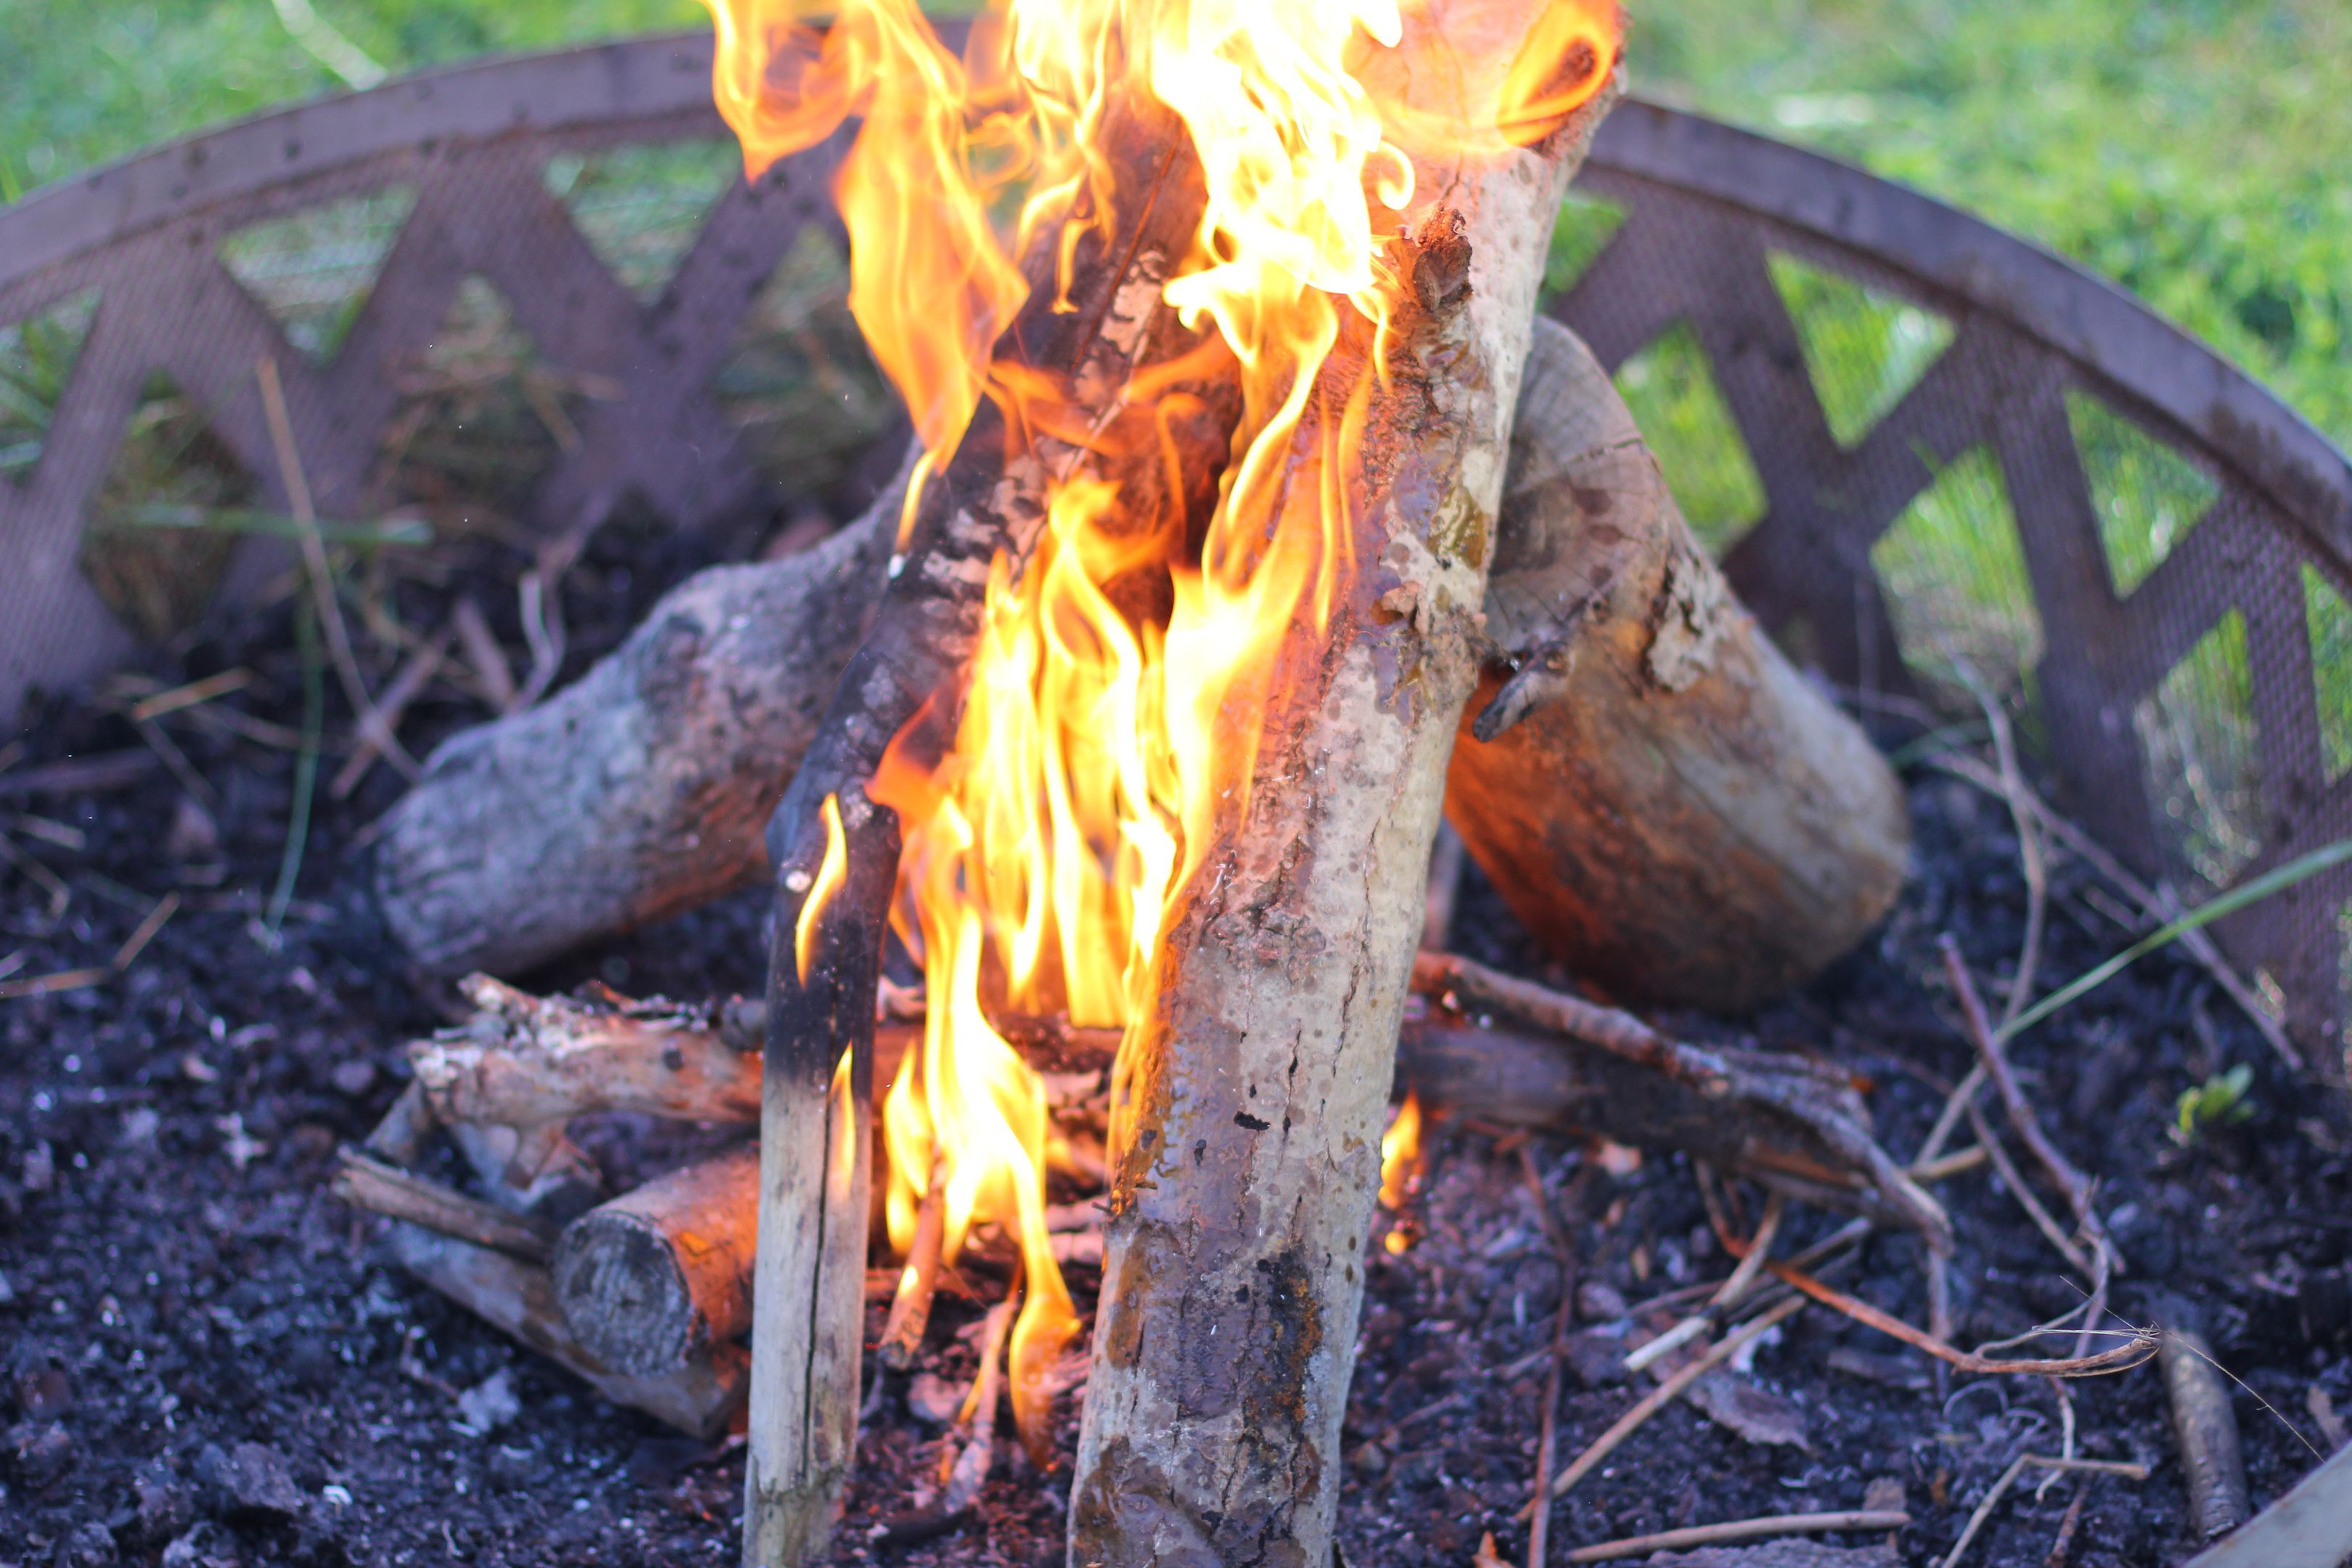 How To Start A Fire In A Fire Pit Www Ehow Com Fire Firepit Firepit Area Firepit Diy Firepit Ideas Fire In 2020 Fire Pit Backyard Outdoor Fire Pit Fire Pit